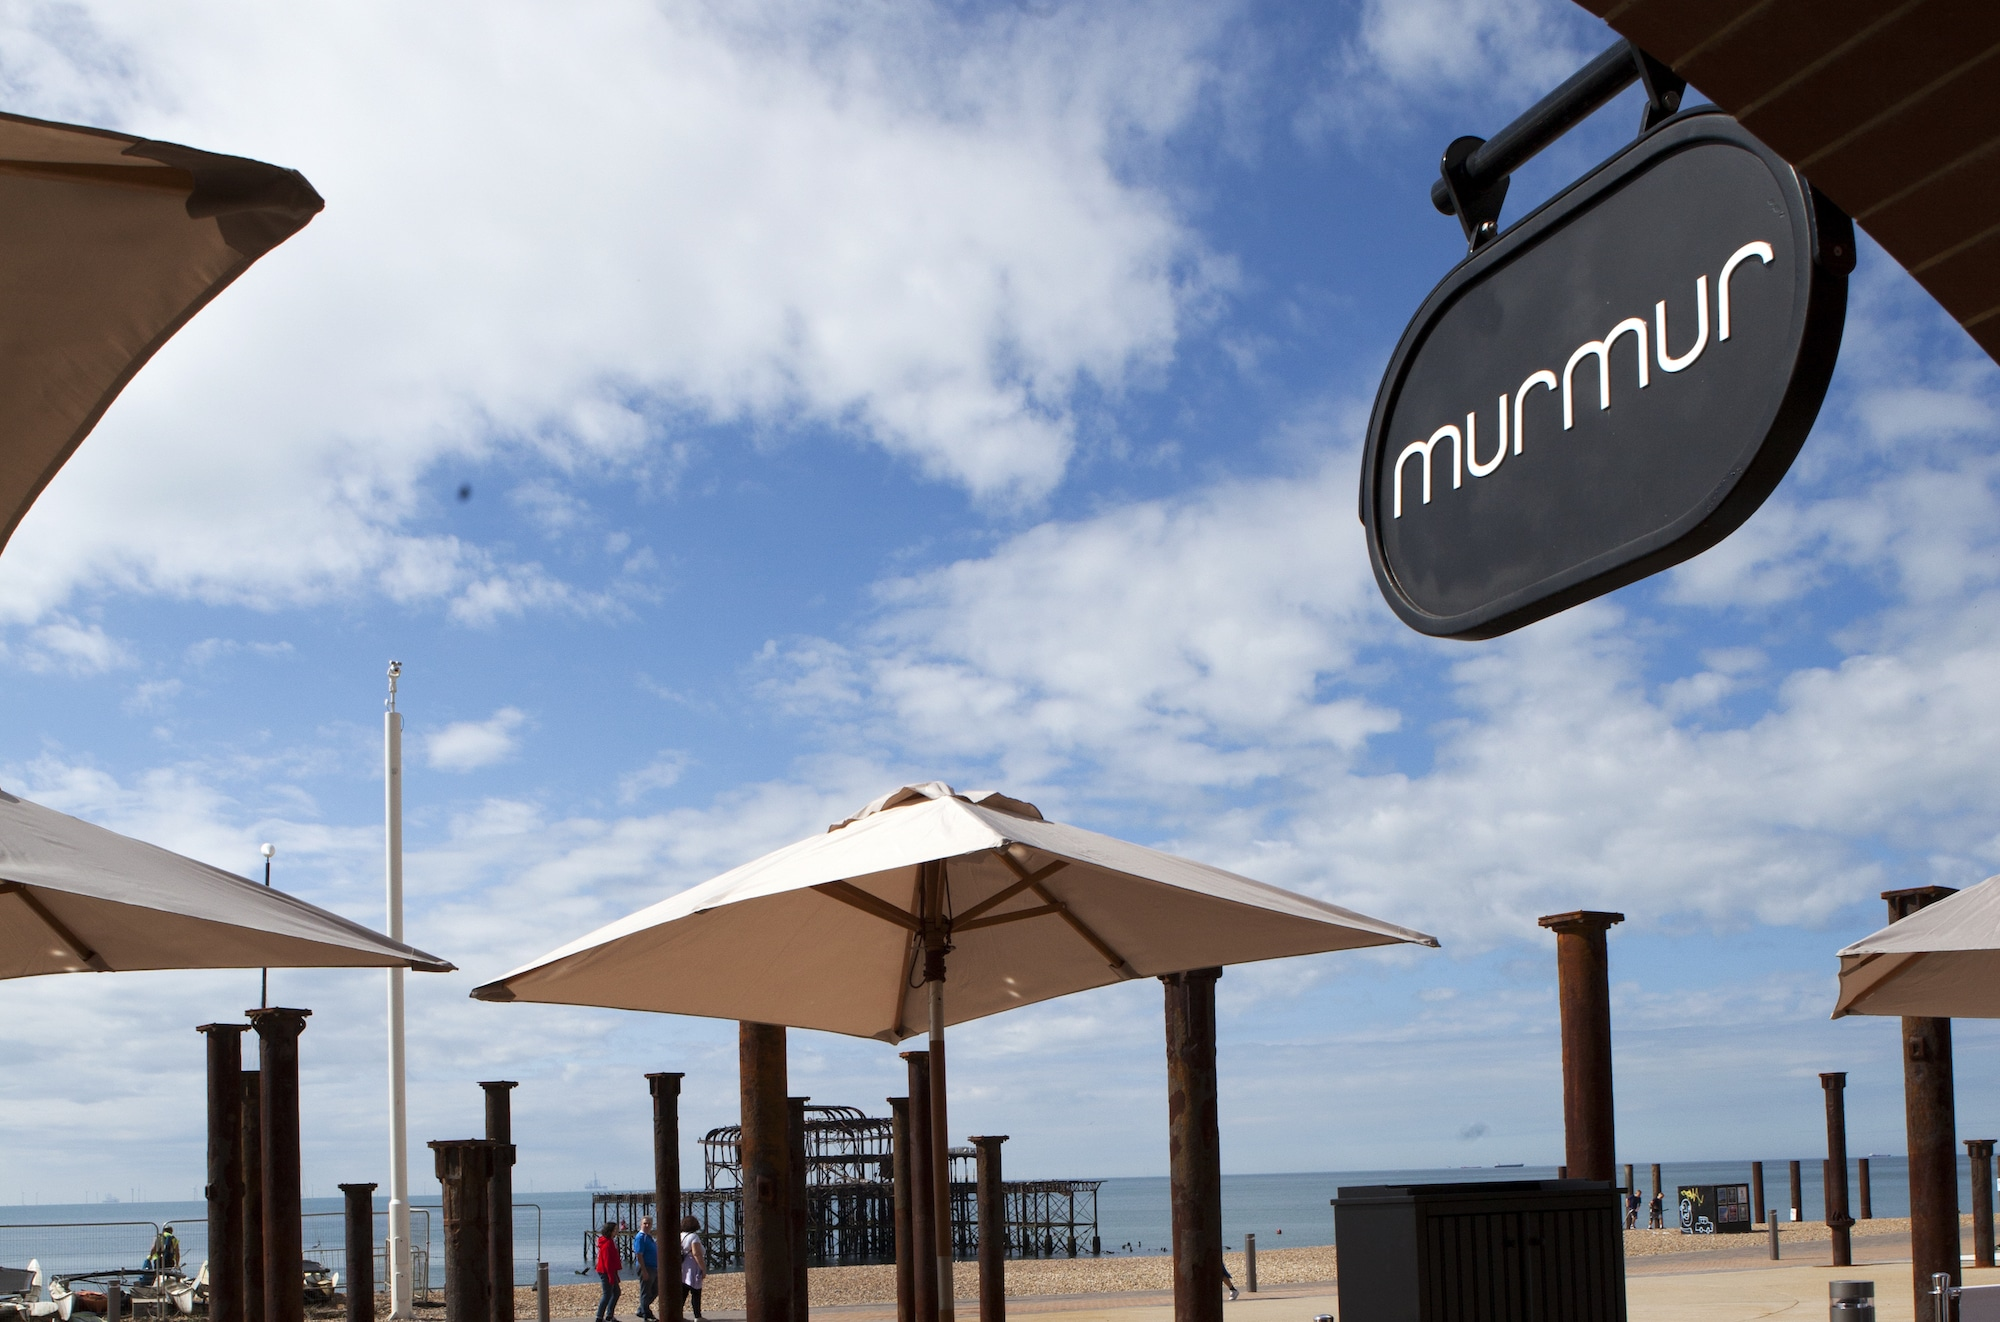 Murmur-and-West-Pier-Brighton.jpg